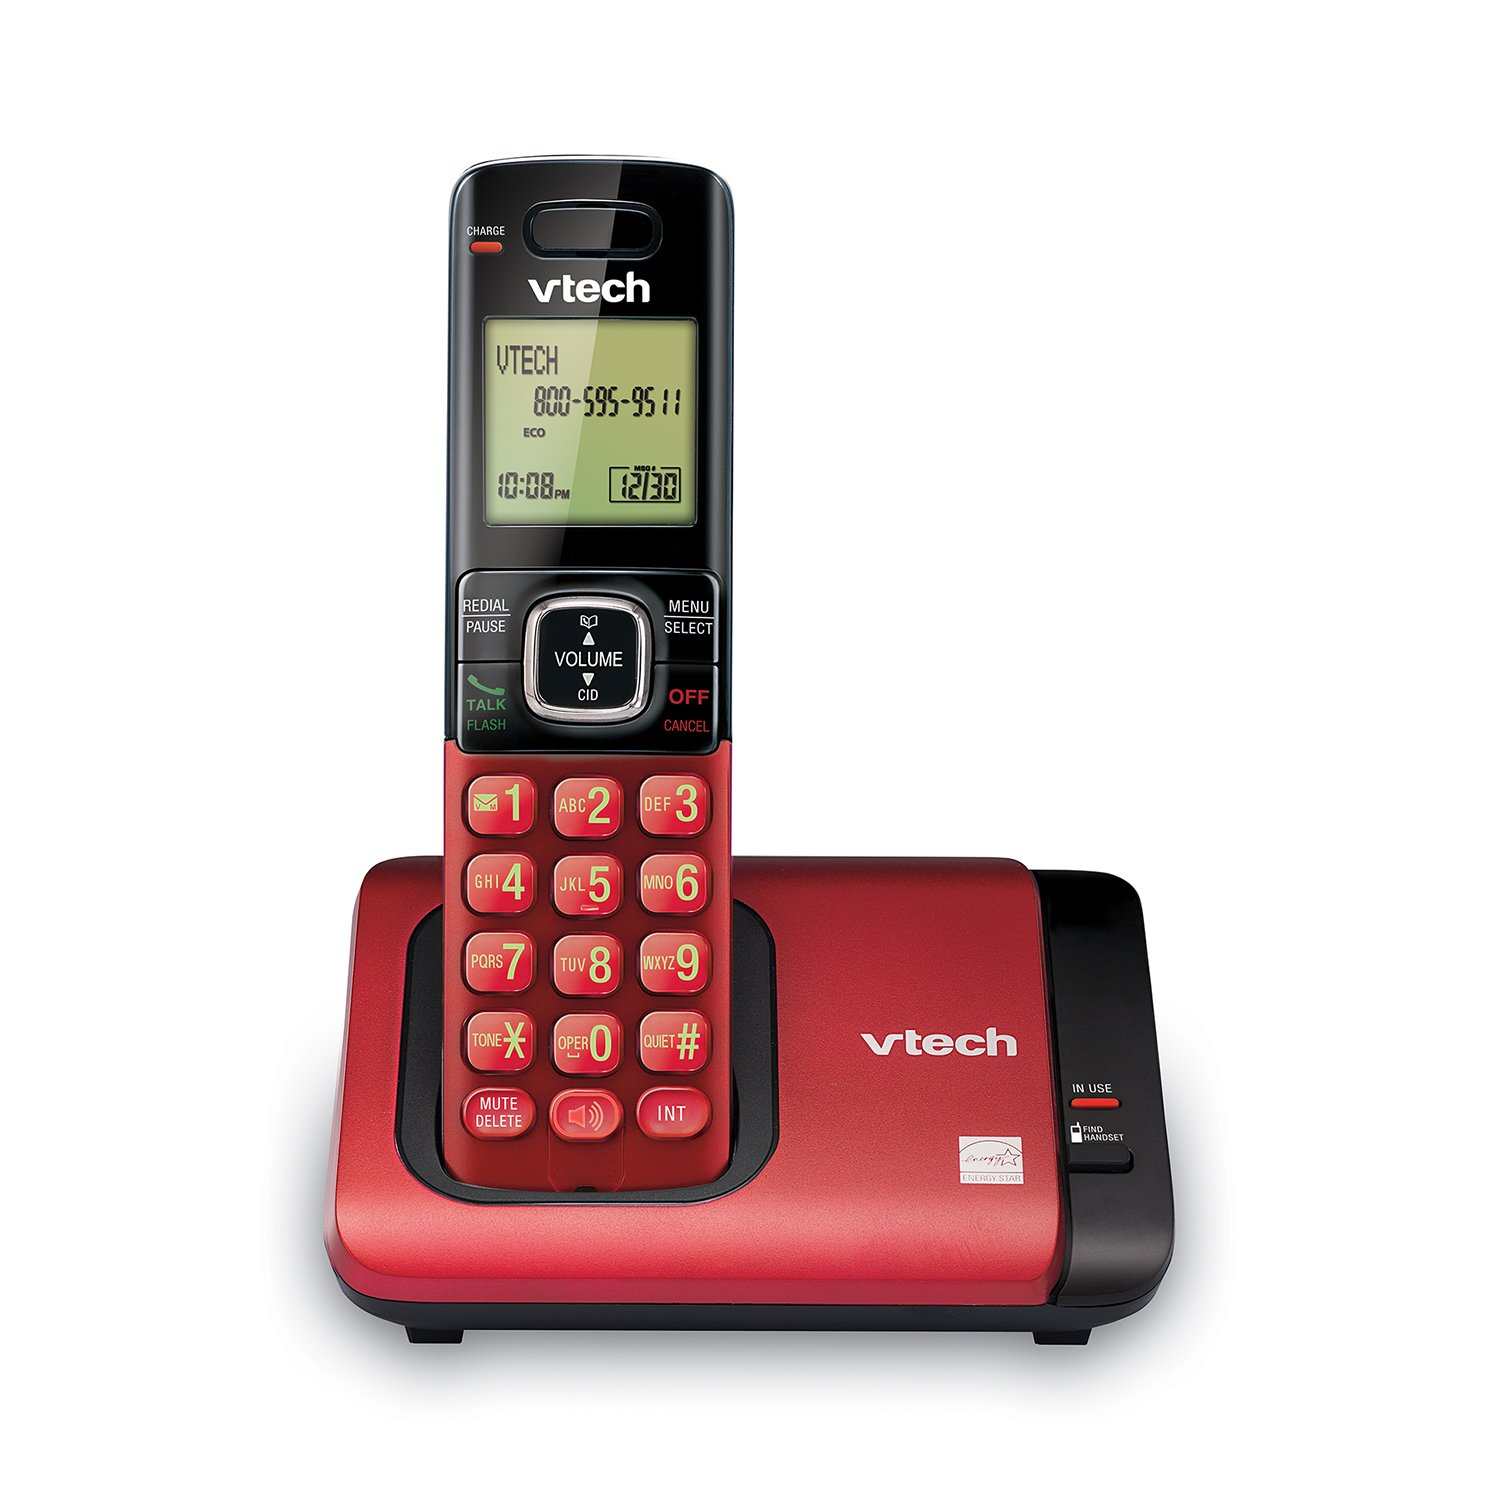 VTech CS6719-16 DECT 6.0 Phone with Caller ID/Call Waiting, 1 Cordless Handset, Red